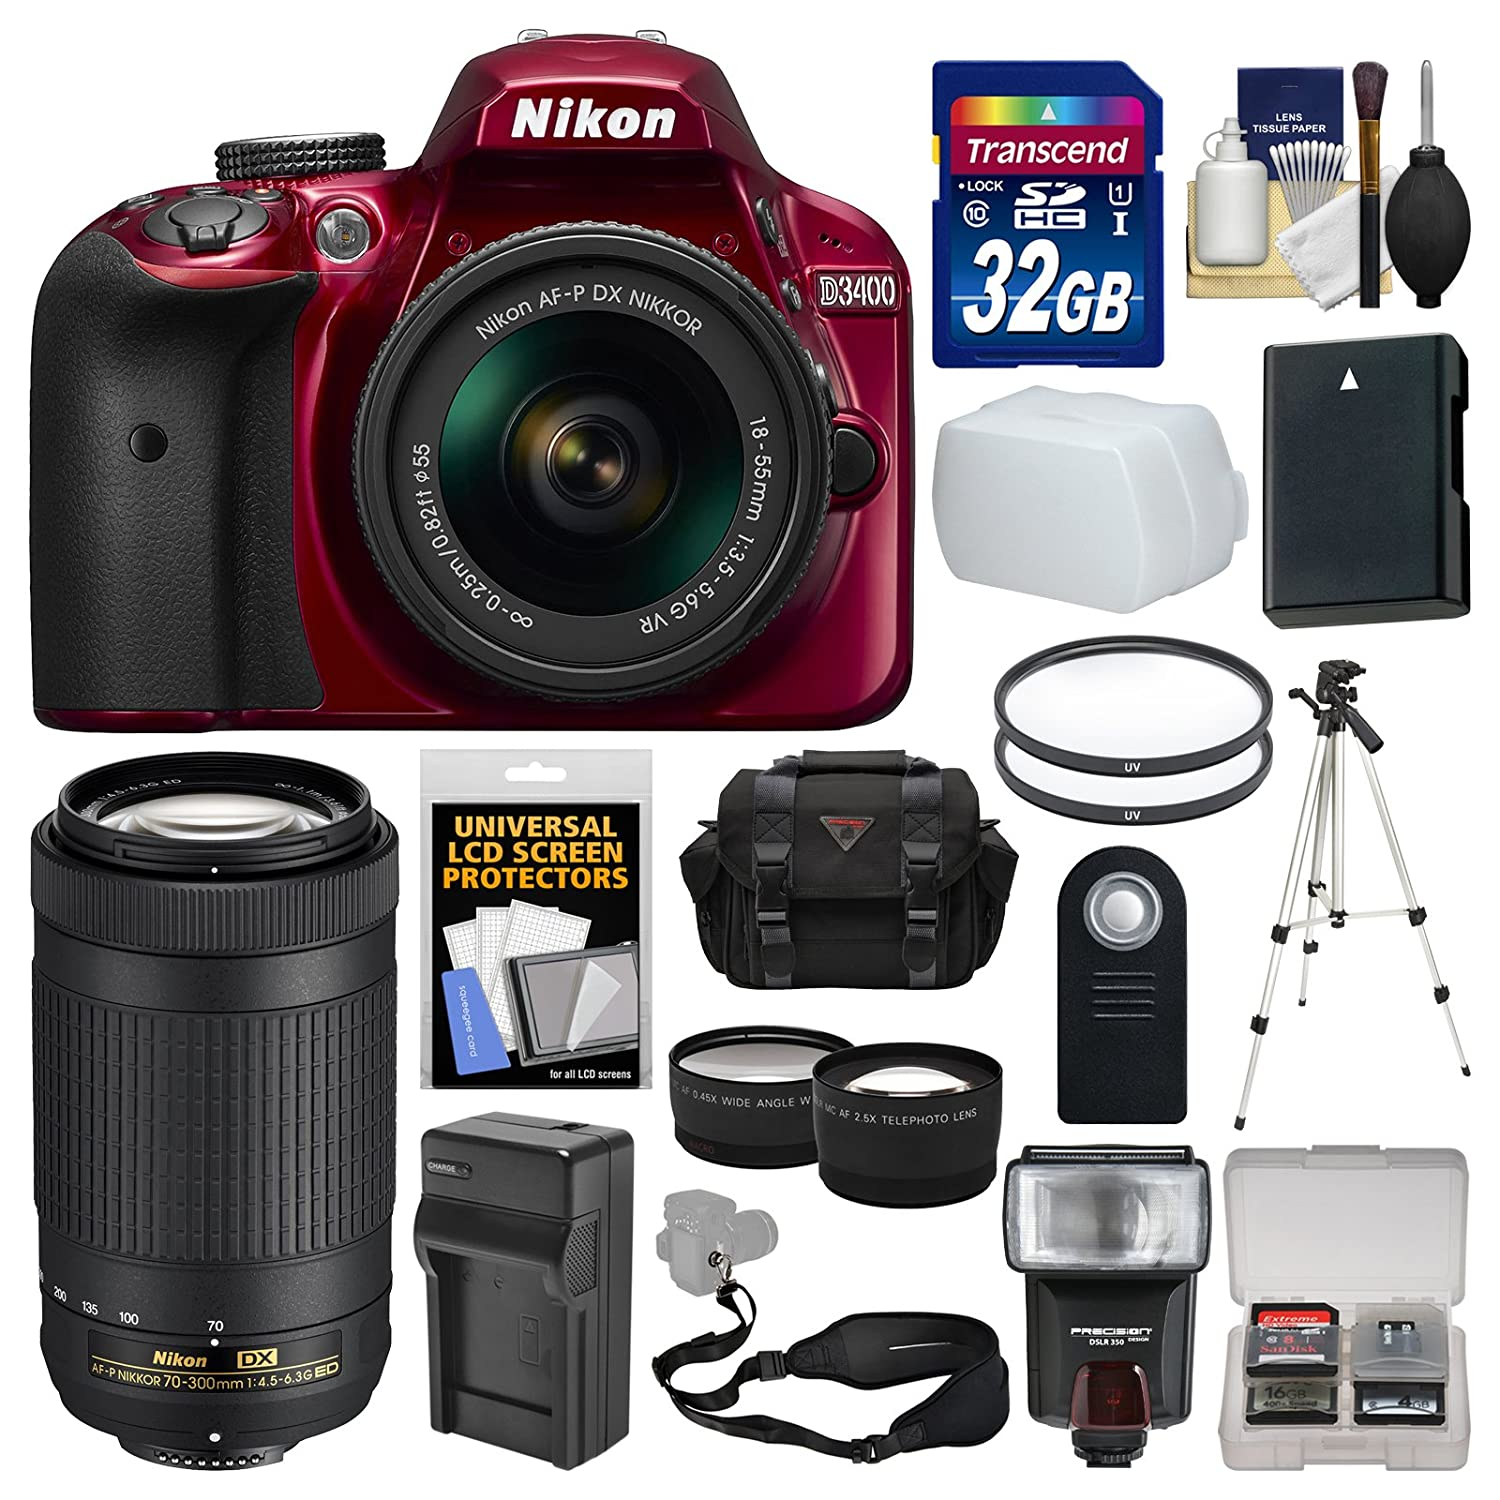 Nikon D3400 Digital SLR Camera & 18-55mm VR (Red) & 70-300mm DX AF-P Lenses with 32GB Card + Case + Flash + Battery & Charger + Tripod + Tele/Wide Lens Kit